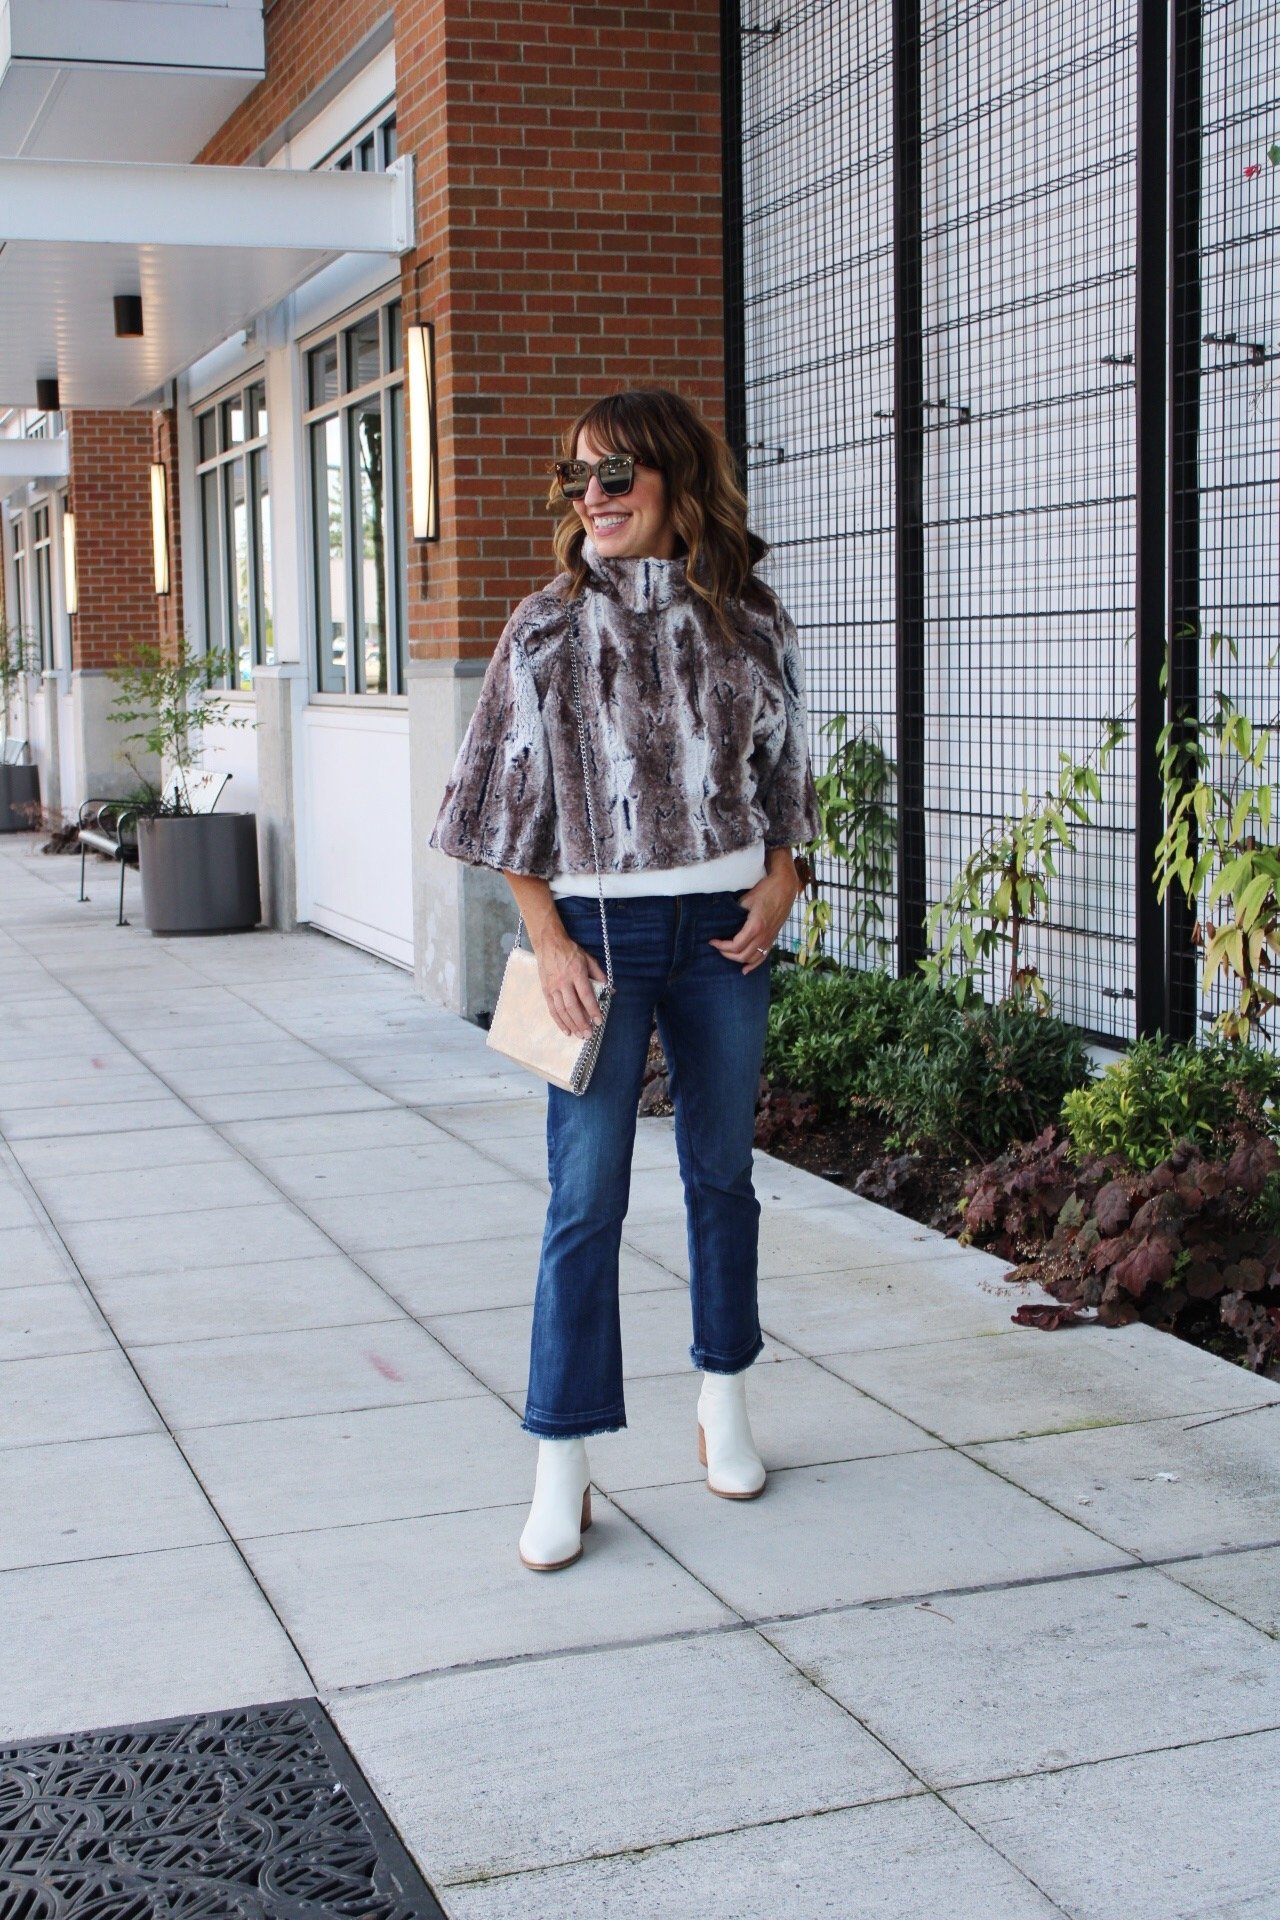 faux fur top, cozy fall fashion